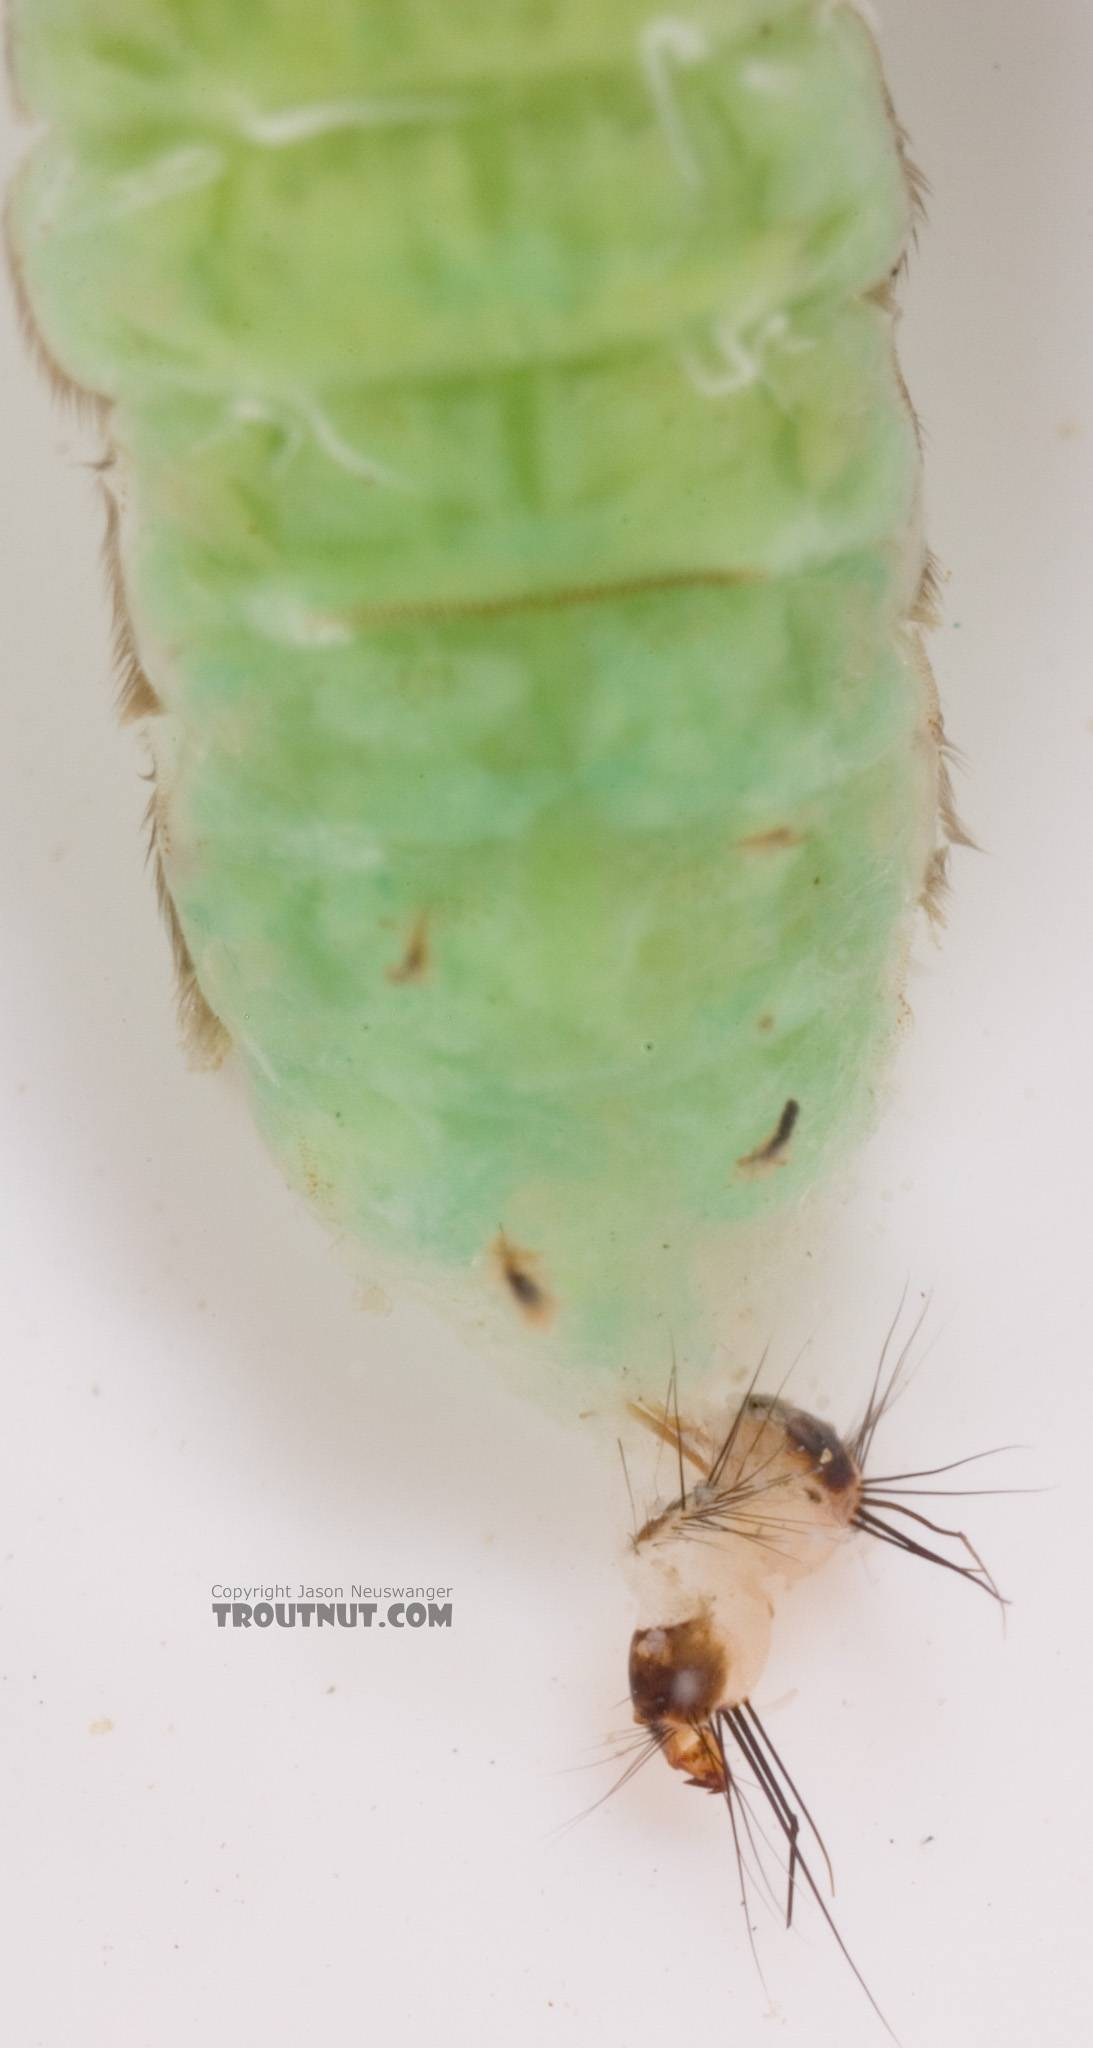 Brachycentrus (Grannoms) Caddisfly Pupa from Cayuta Creek in New York